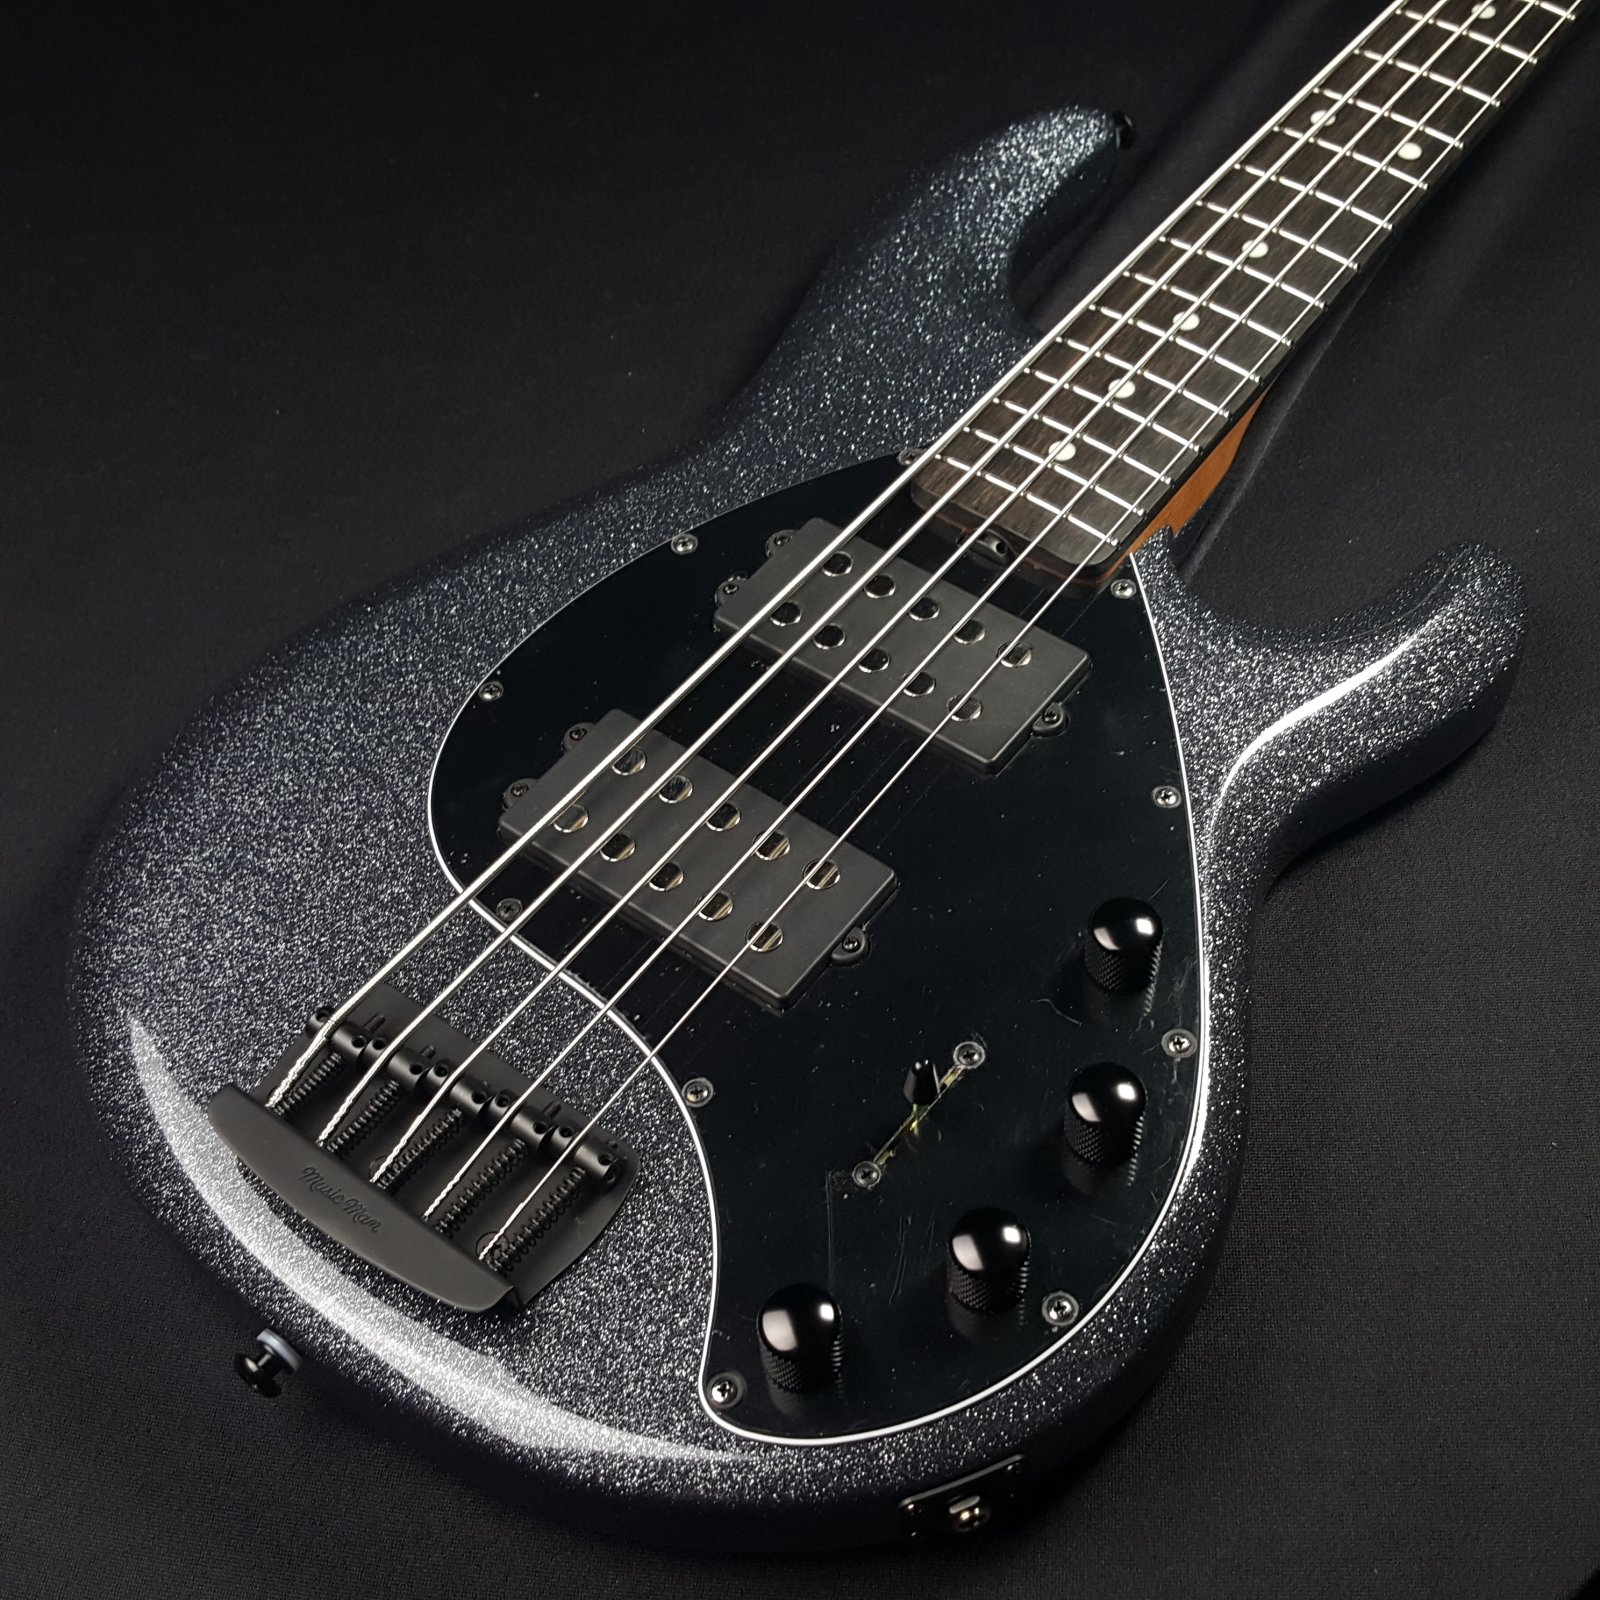 Ernie Ball Music Man Stingray 5 Special 5-String HH Ebony Fingerboard Charcoal Sparkle